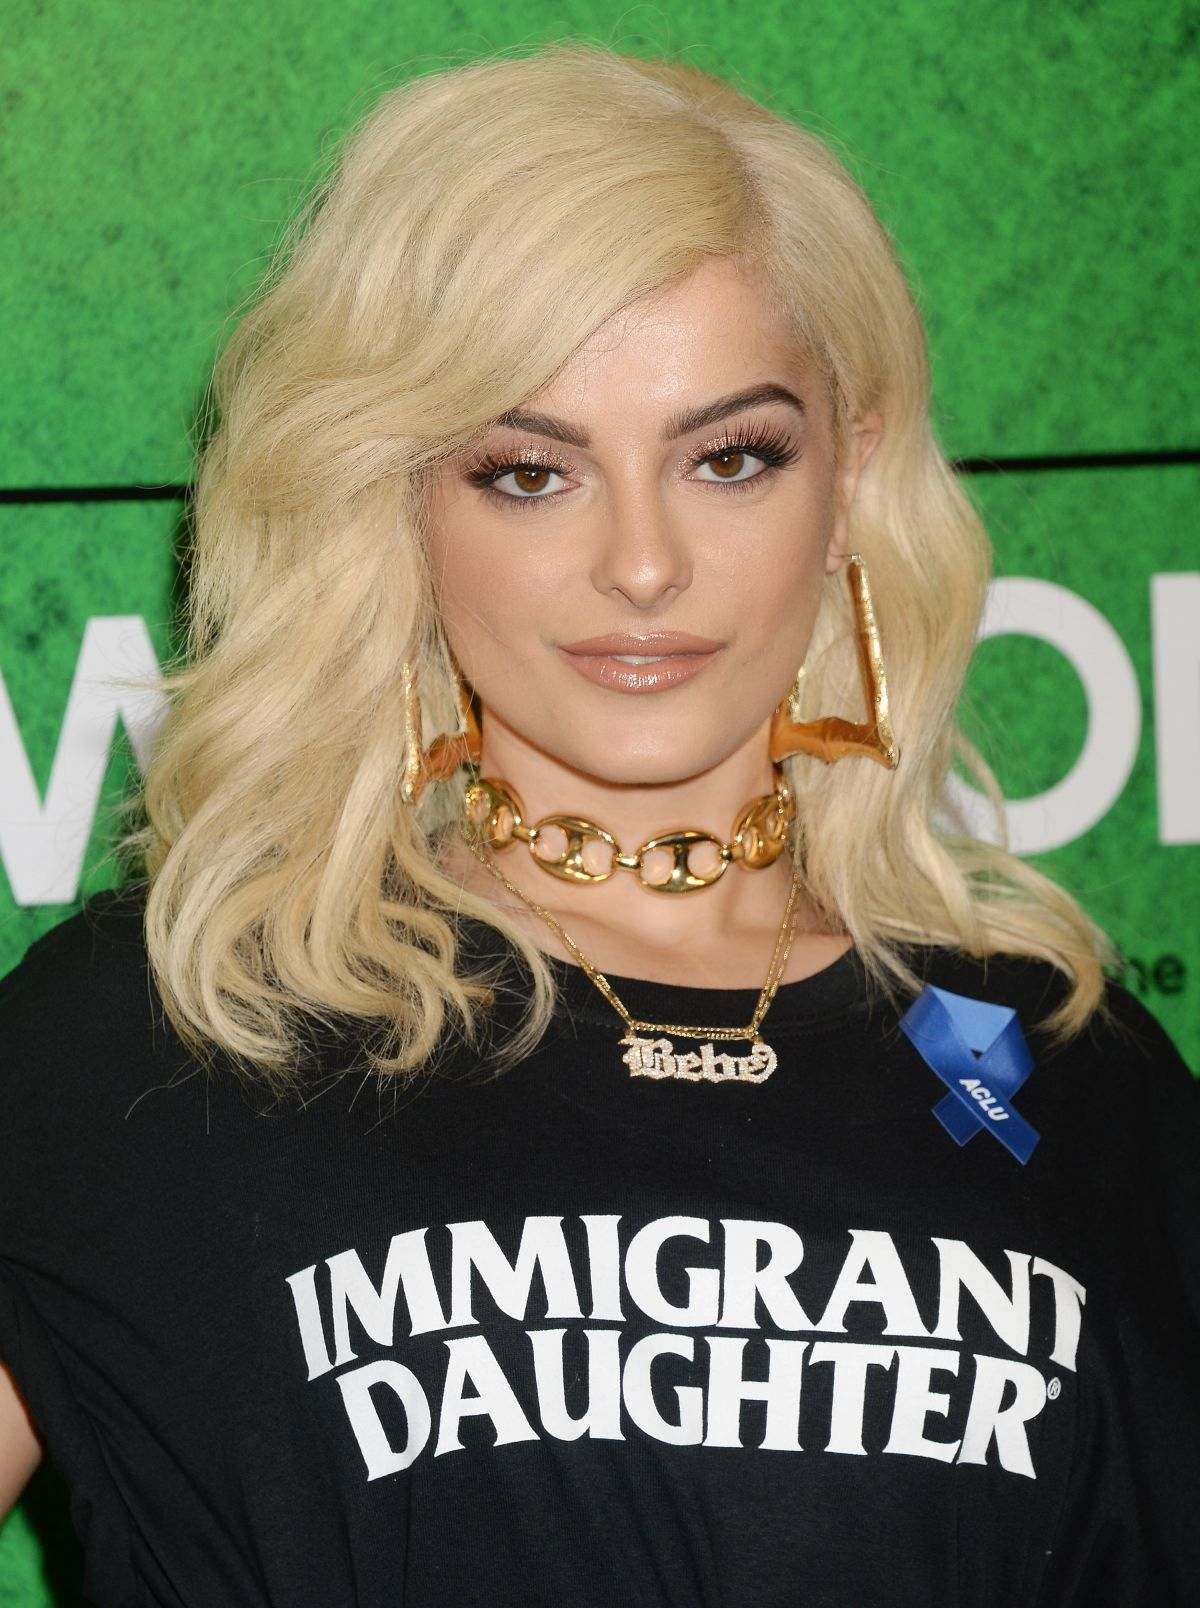 bebe-rexha-at-zedds-welcome-aclu-benefit-concert-in-los-angeles-april-03-2017_104081845.jpg